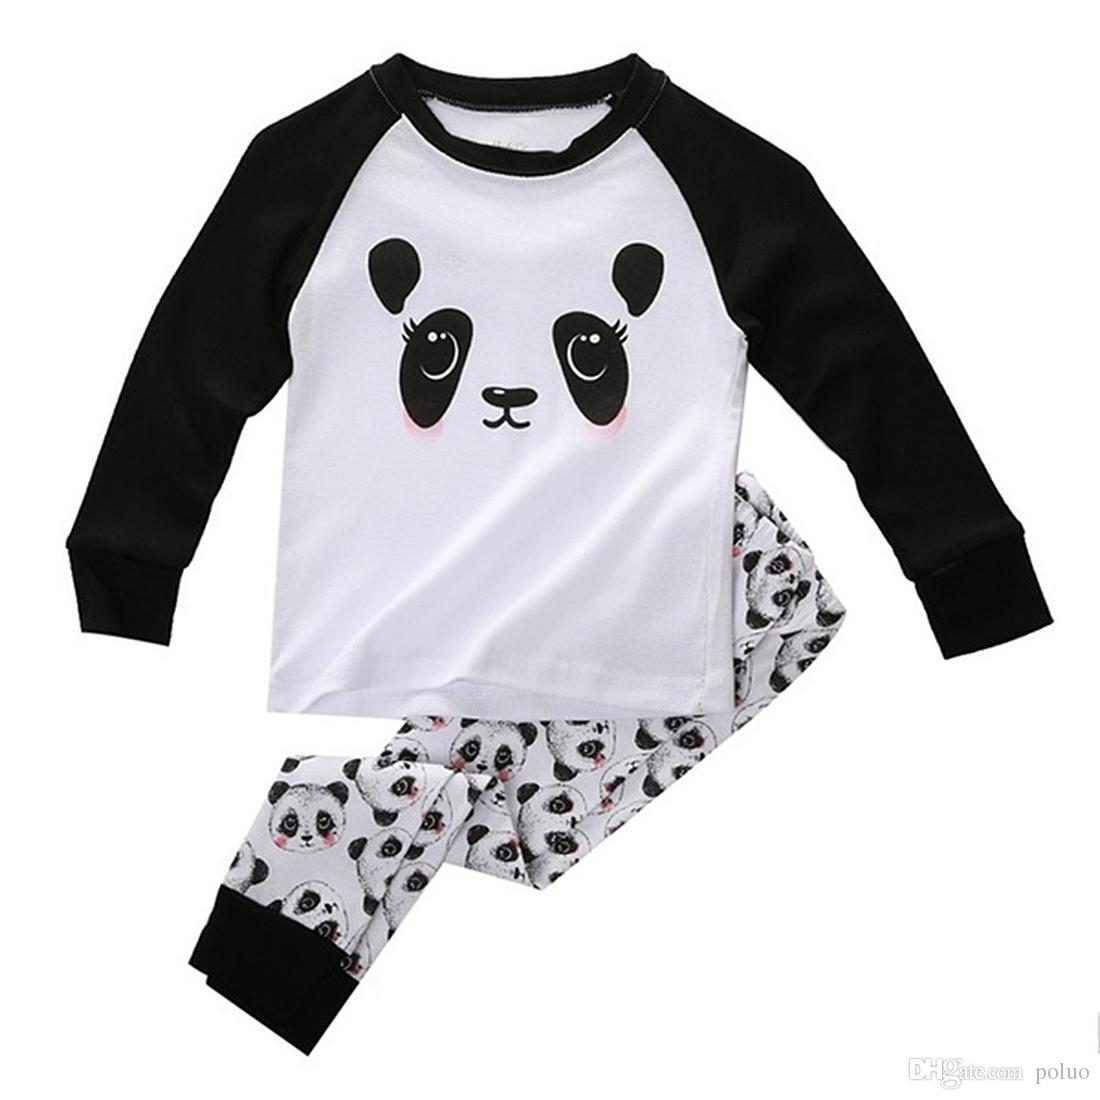 Cute Panda Baby Toddler Kids Boys Girls Sleepwear Nightwear Pajama Set  Girls Shorts Pyjamas Footie Pajamas Kids From Poluo 52f836178fcc